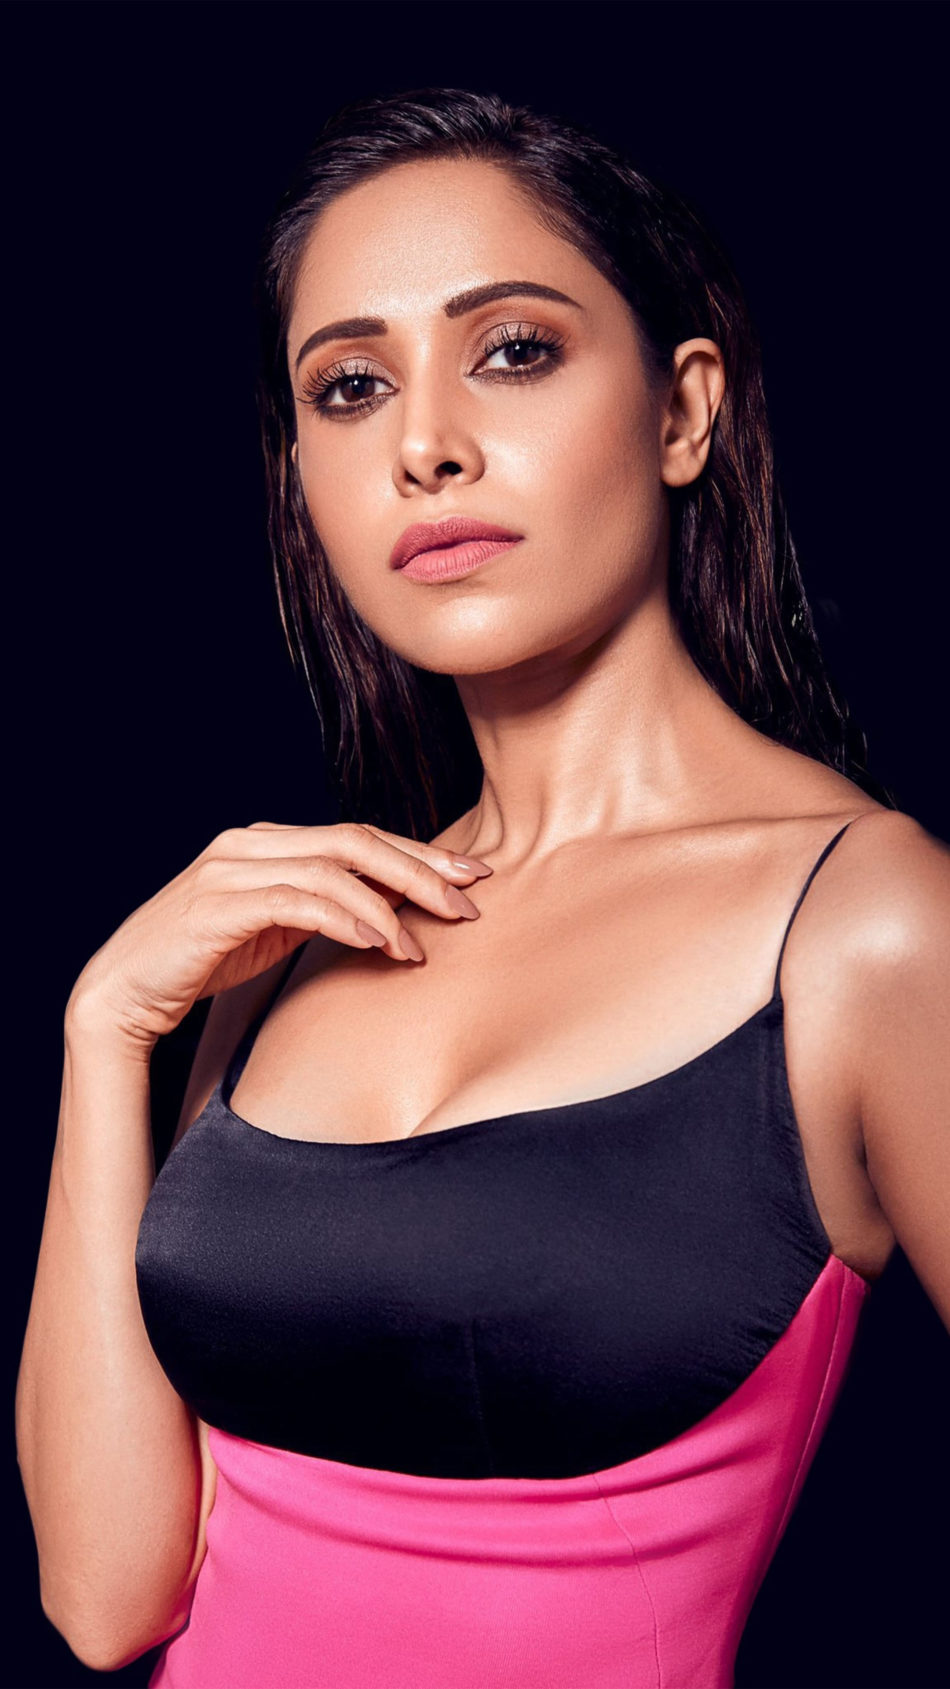 Actress Nushrat Bharucha 2020 4K Ultra HD Mobile Wallpaper